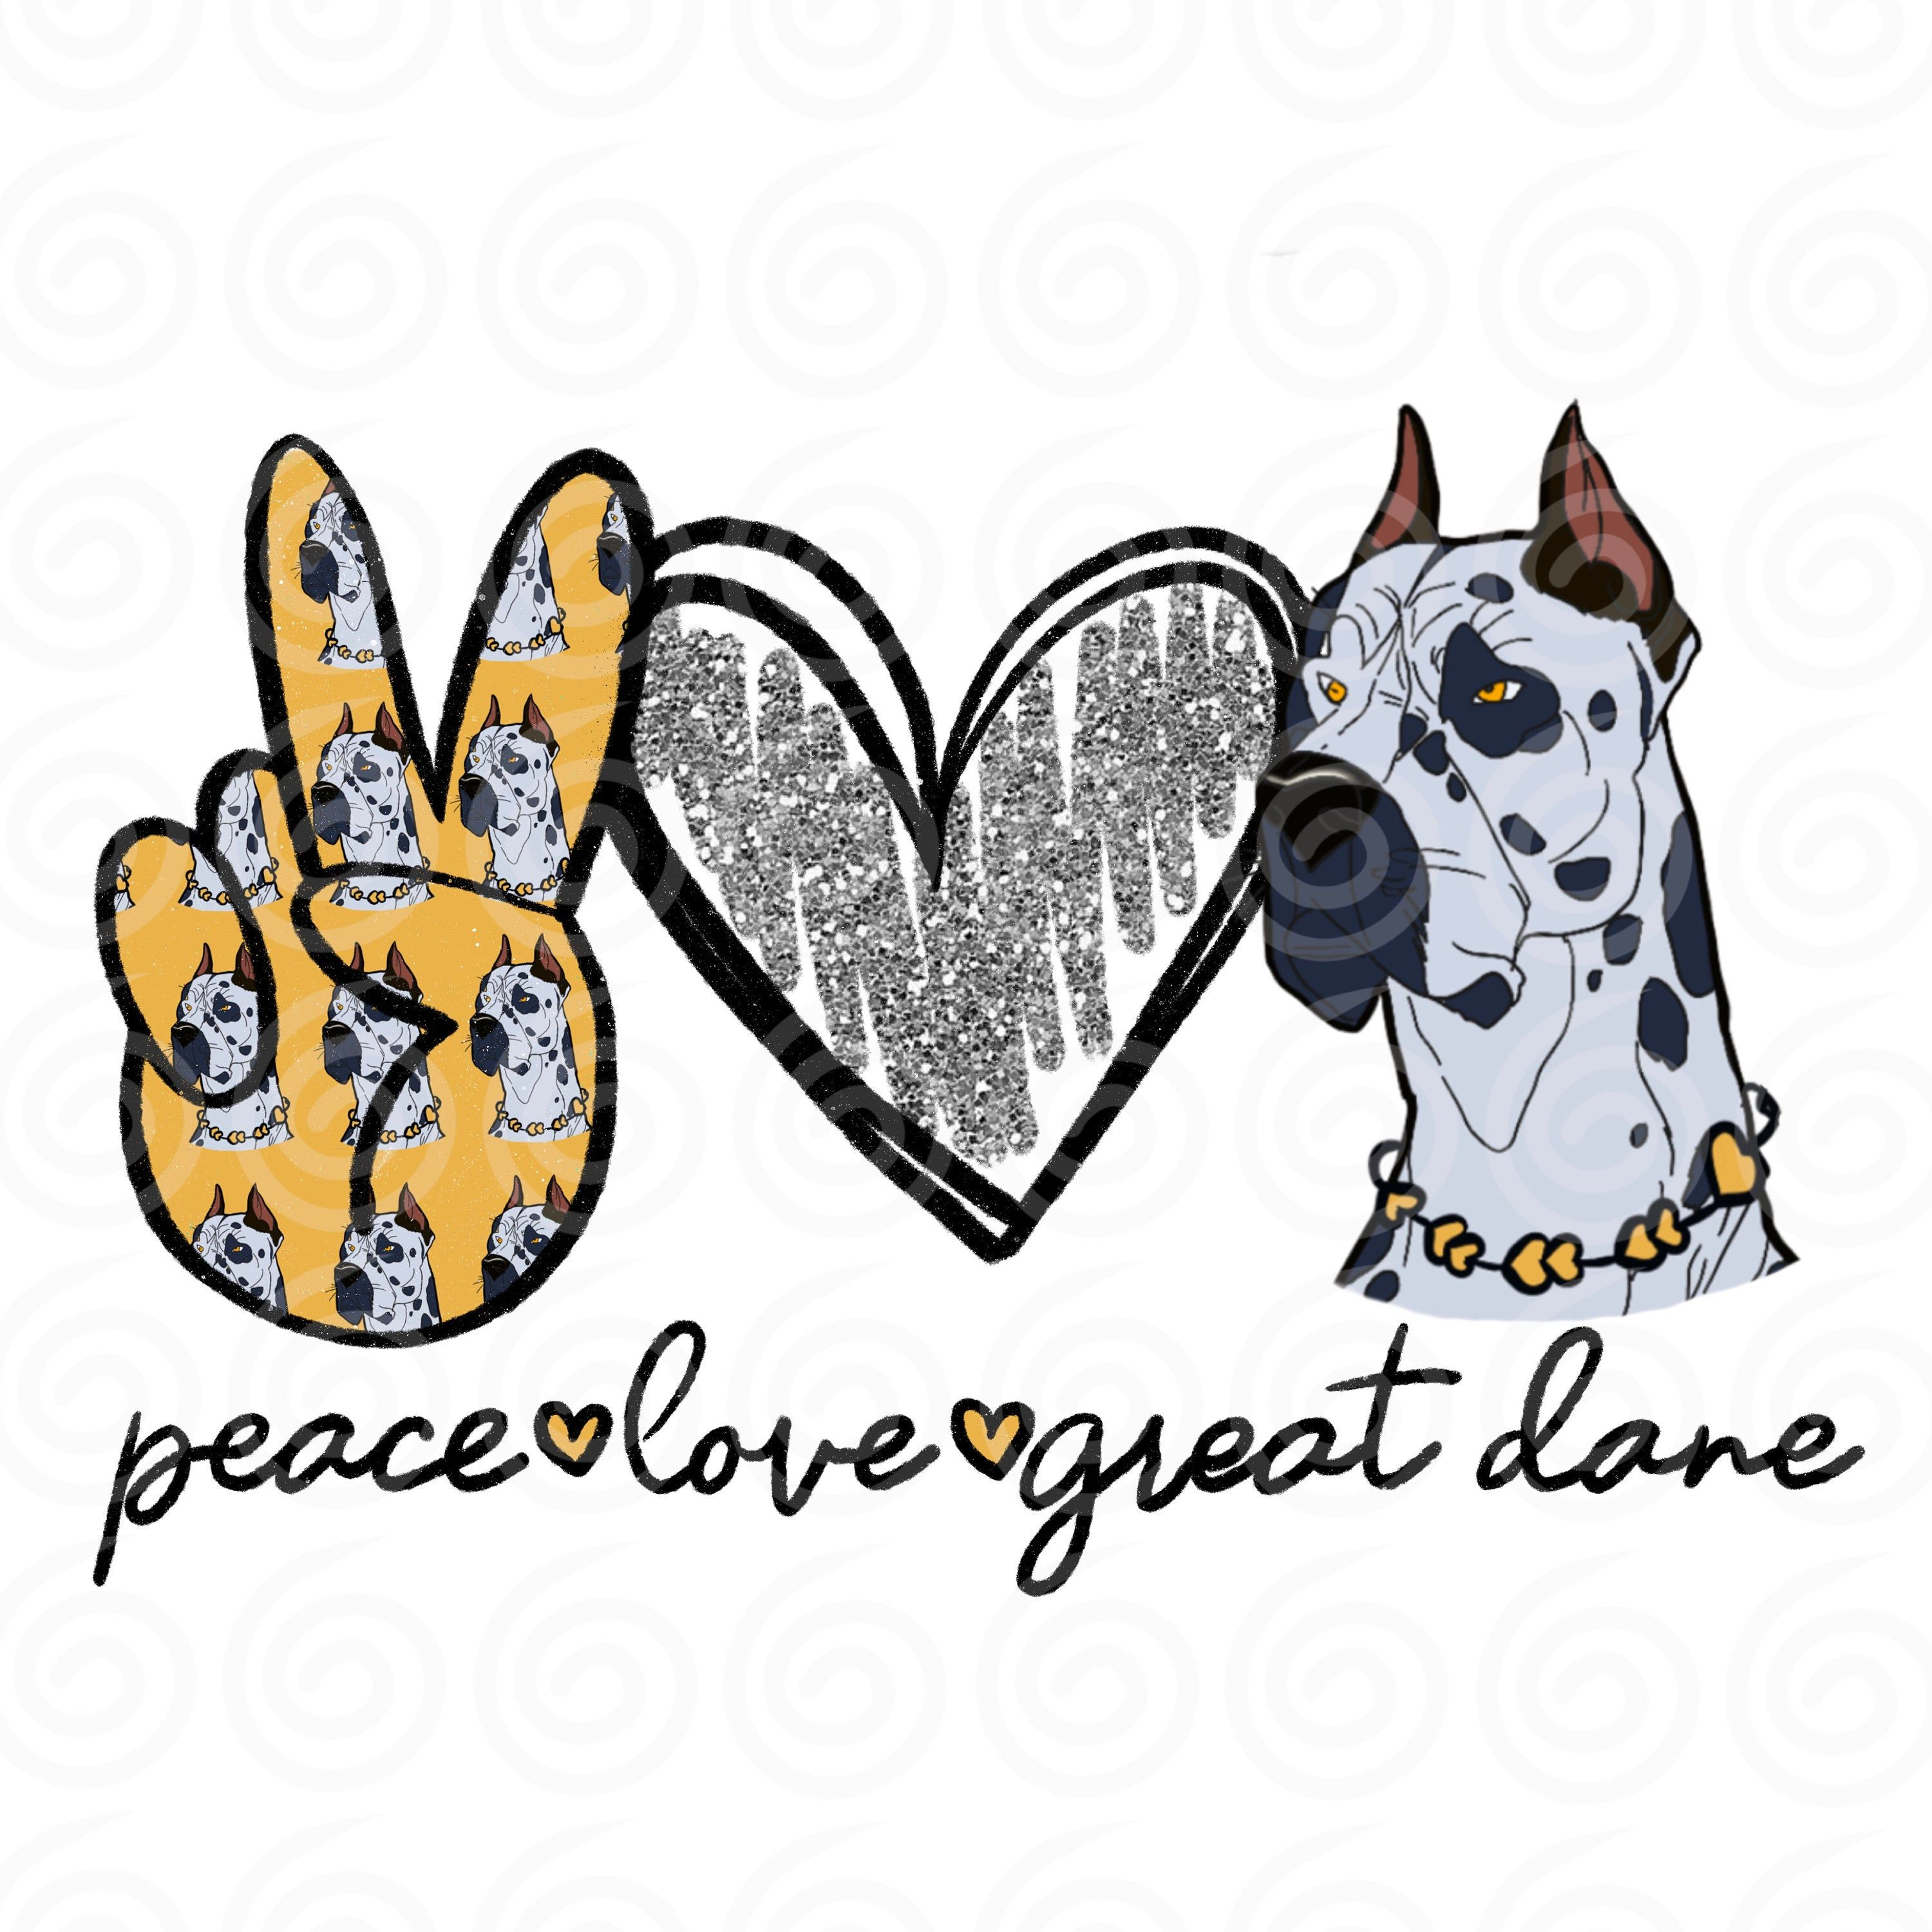 Peace Love Great Dane Png Great Dane Sublimation Great Dane Etsy In 2021 Peace And Love Great Dane How To Draw Hands